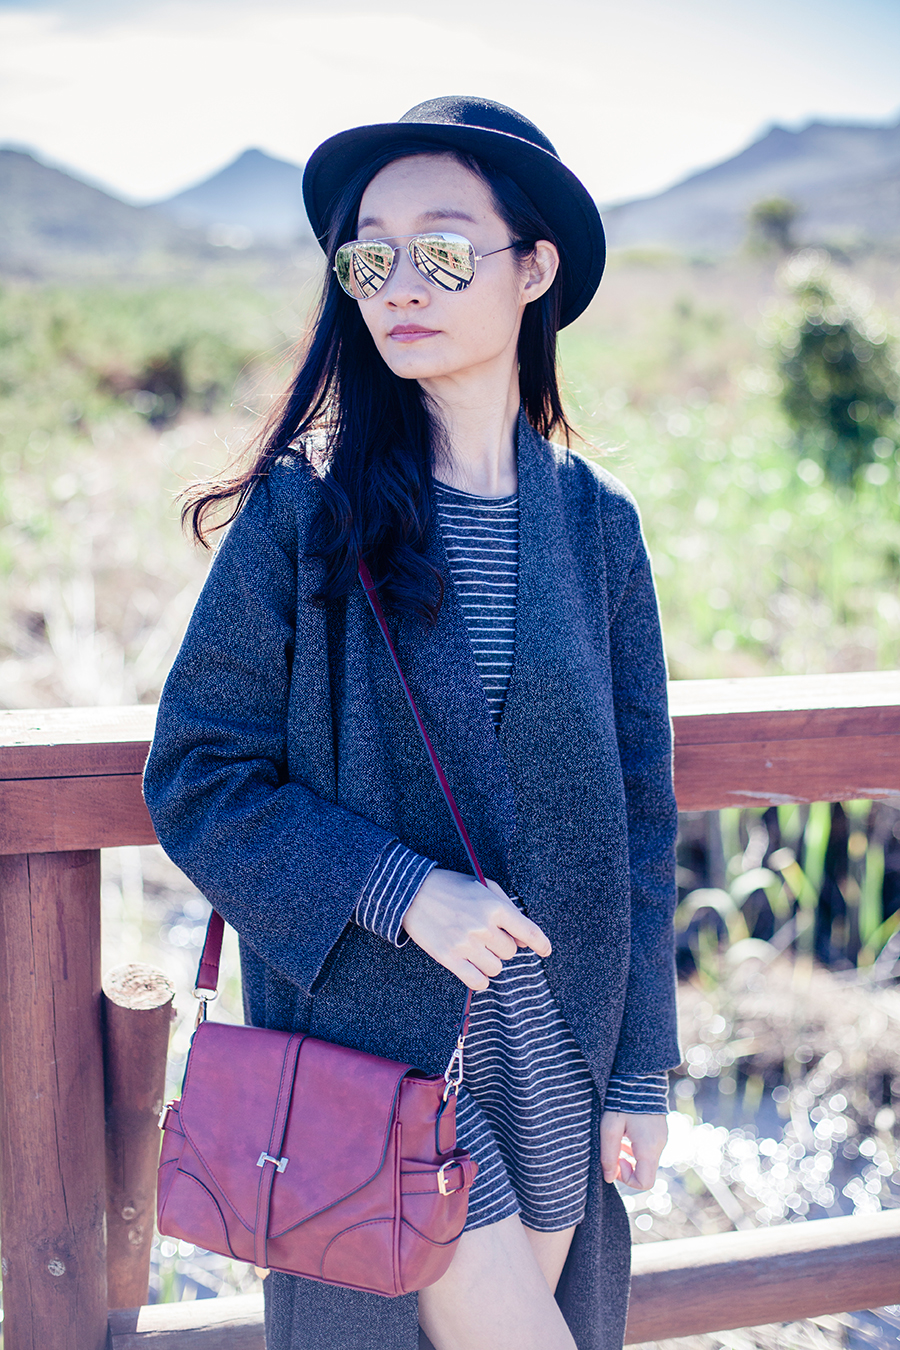 Silvermine Outfit: Zara striped tunic dress, Zara grey knit coat, Dressgal red satchel, Dressin silver mirror sunglasses.